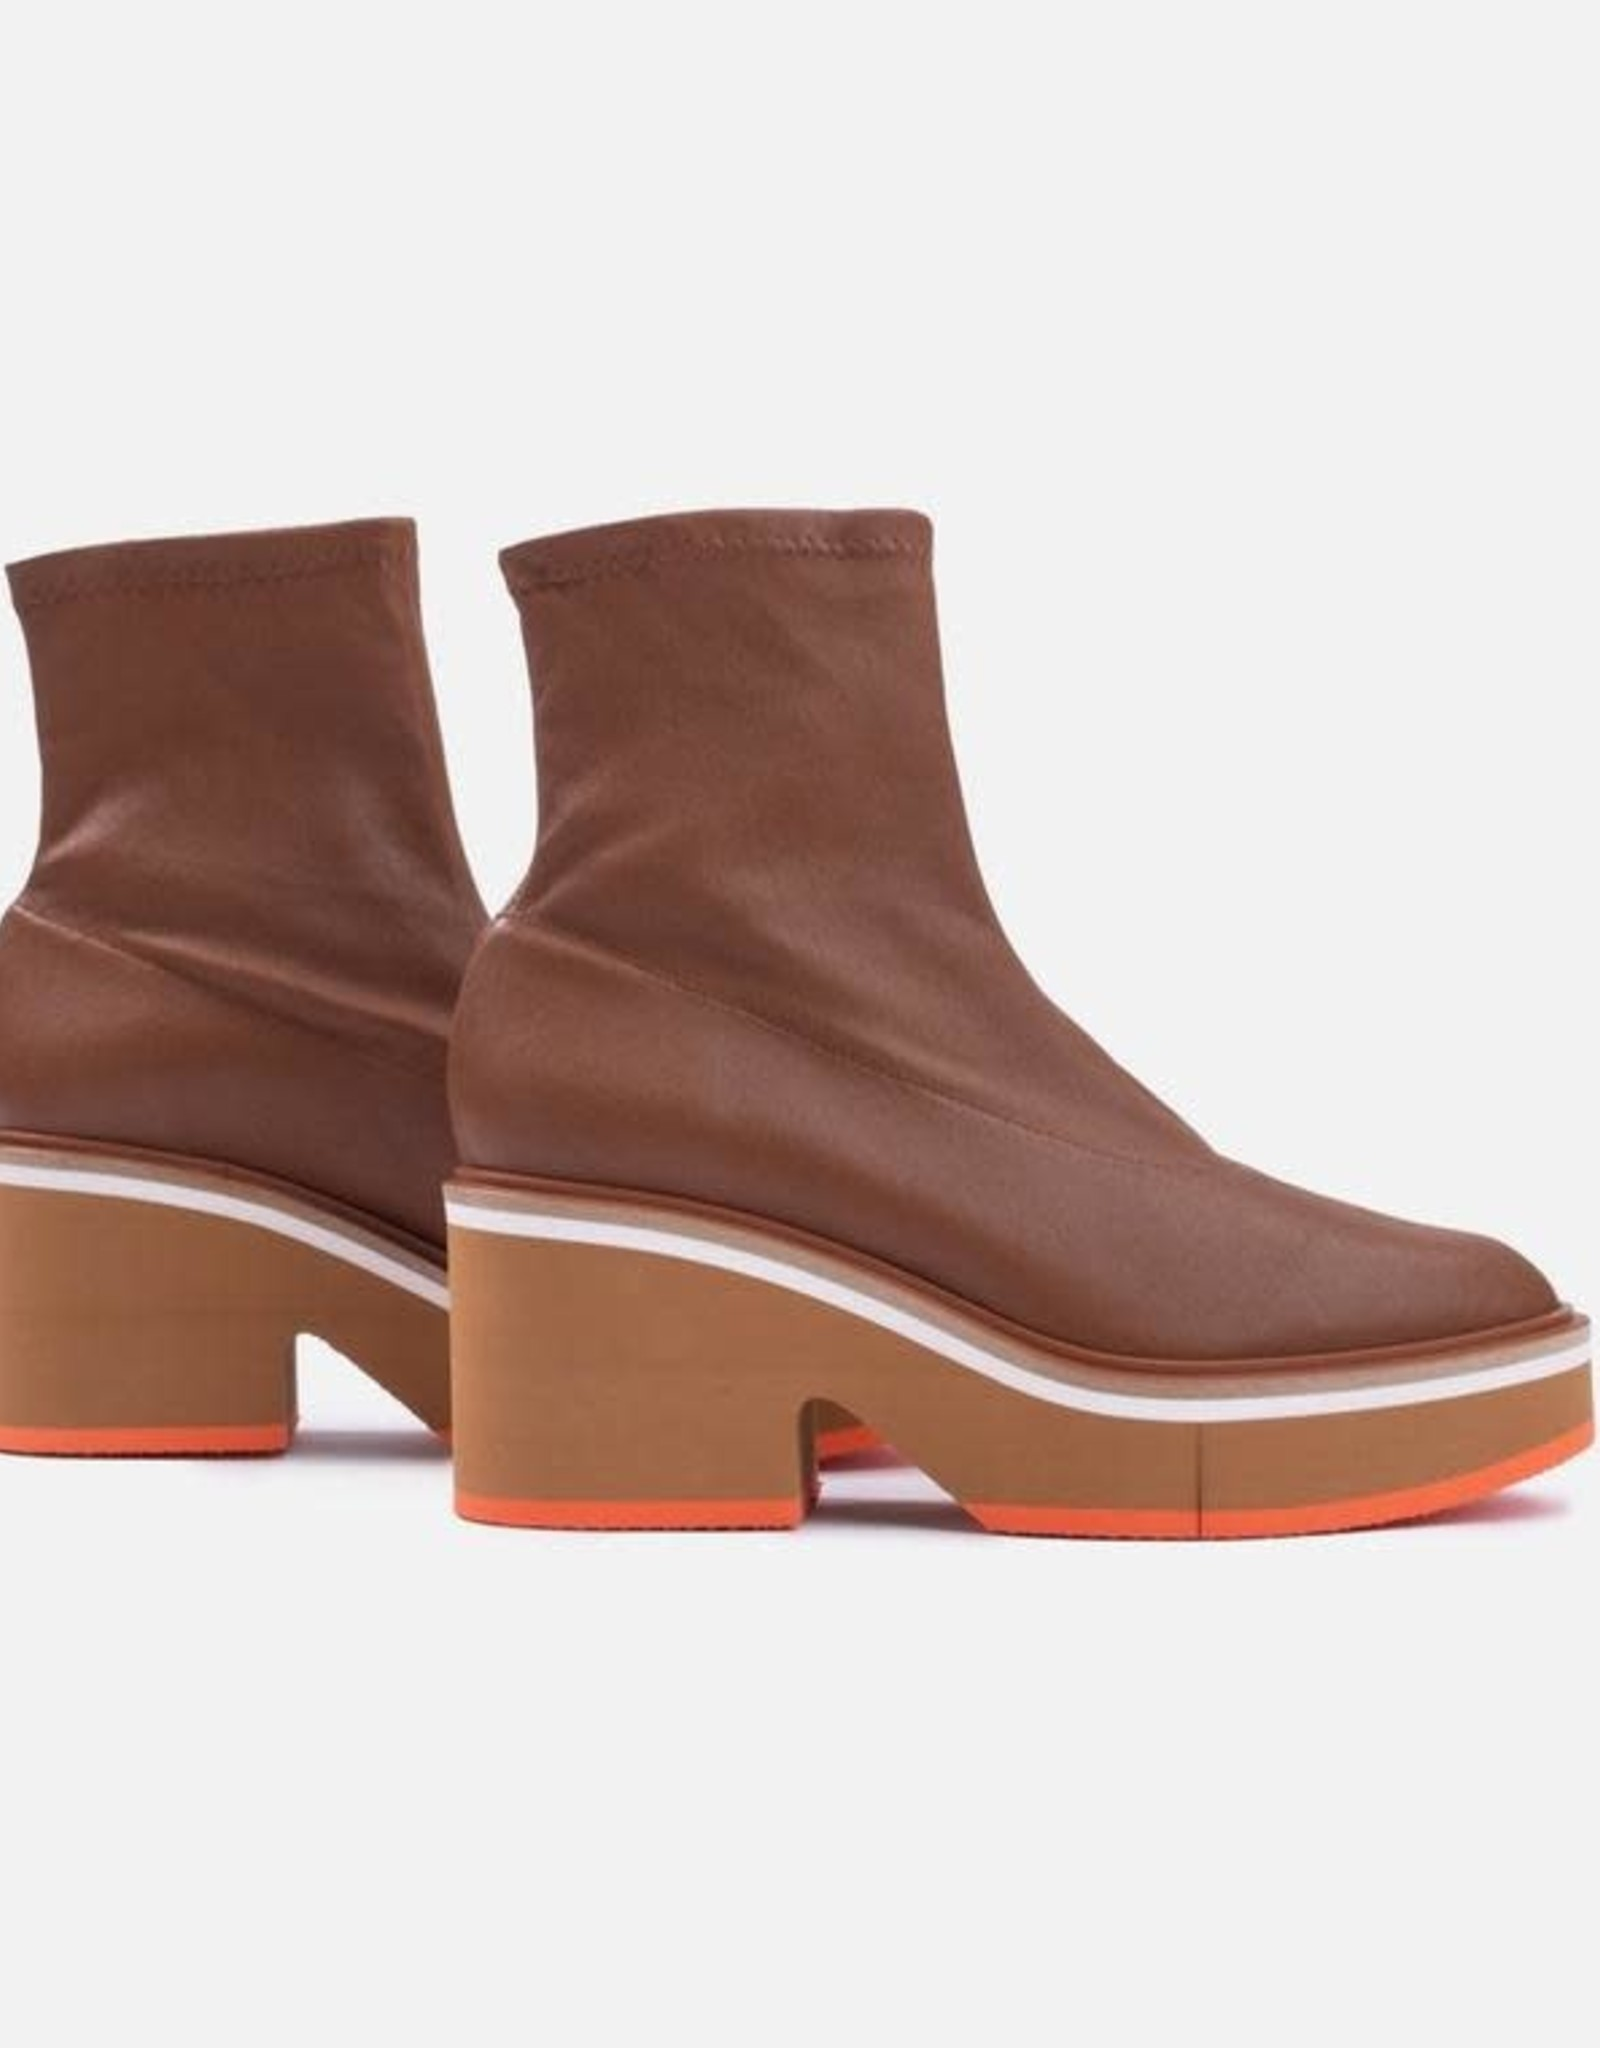 CLERGERIE Albane Ankle Boot